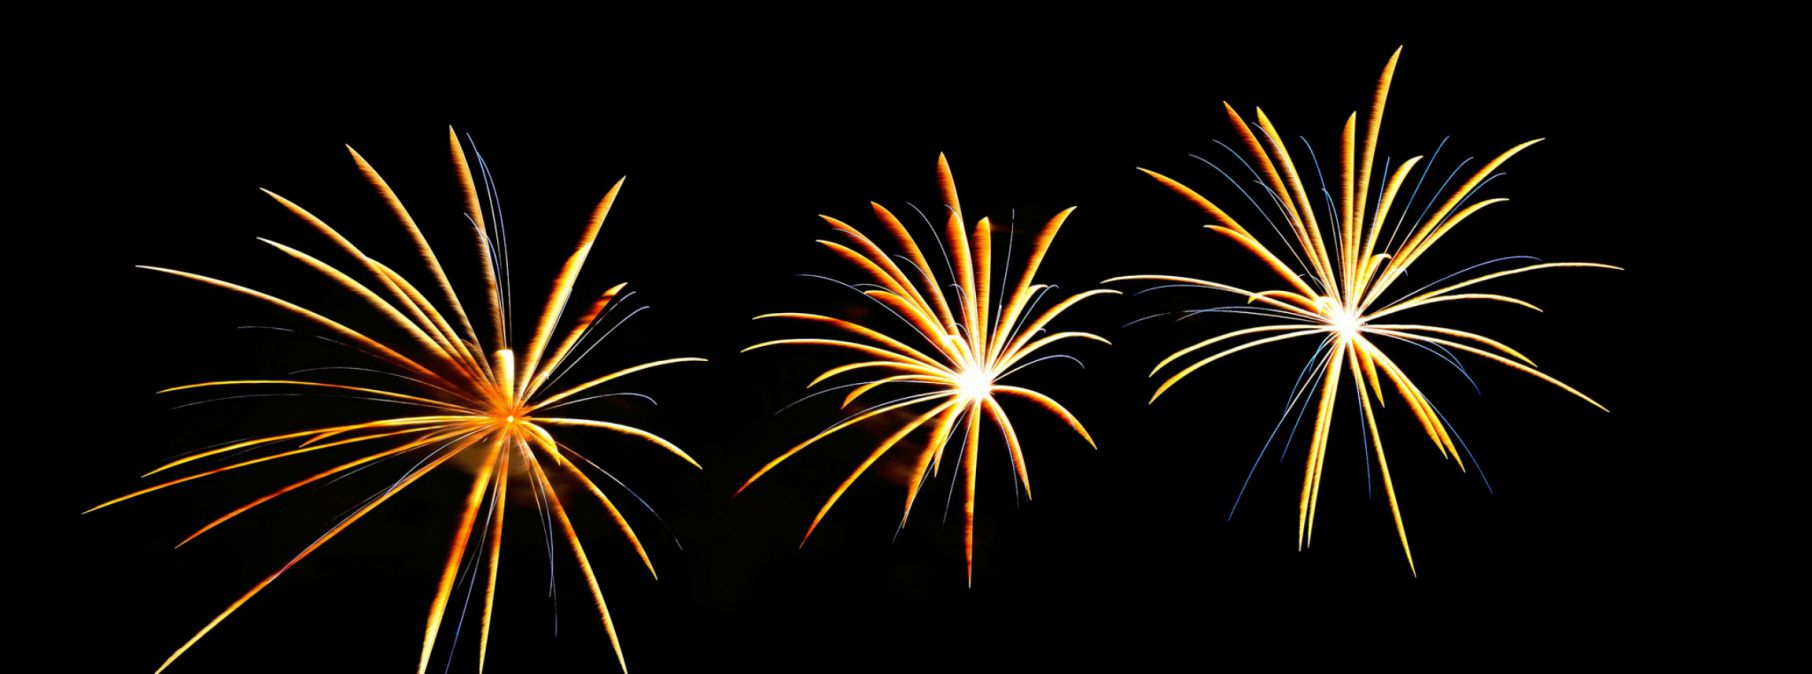 yellow and blue firework bursts